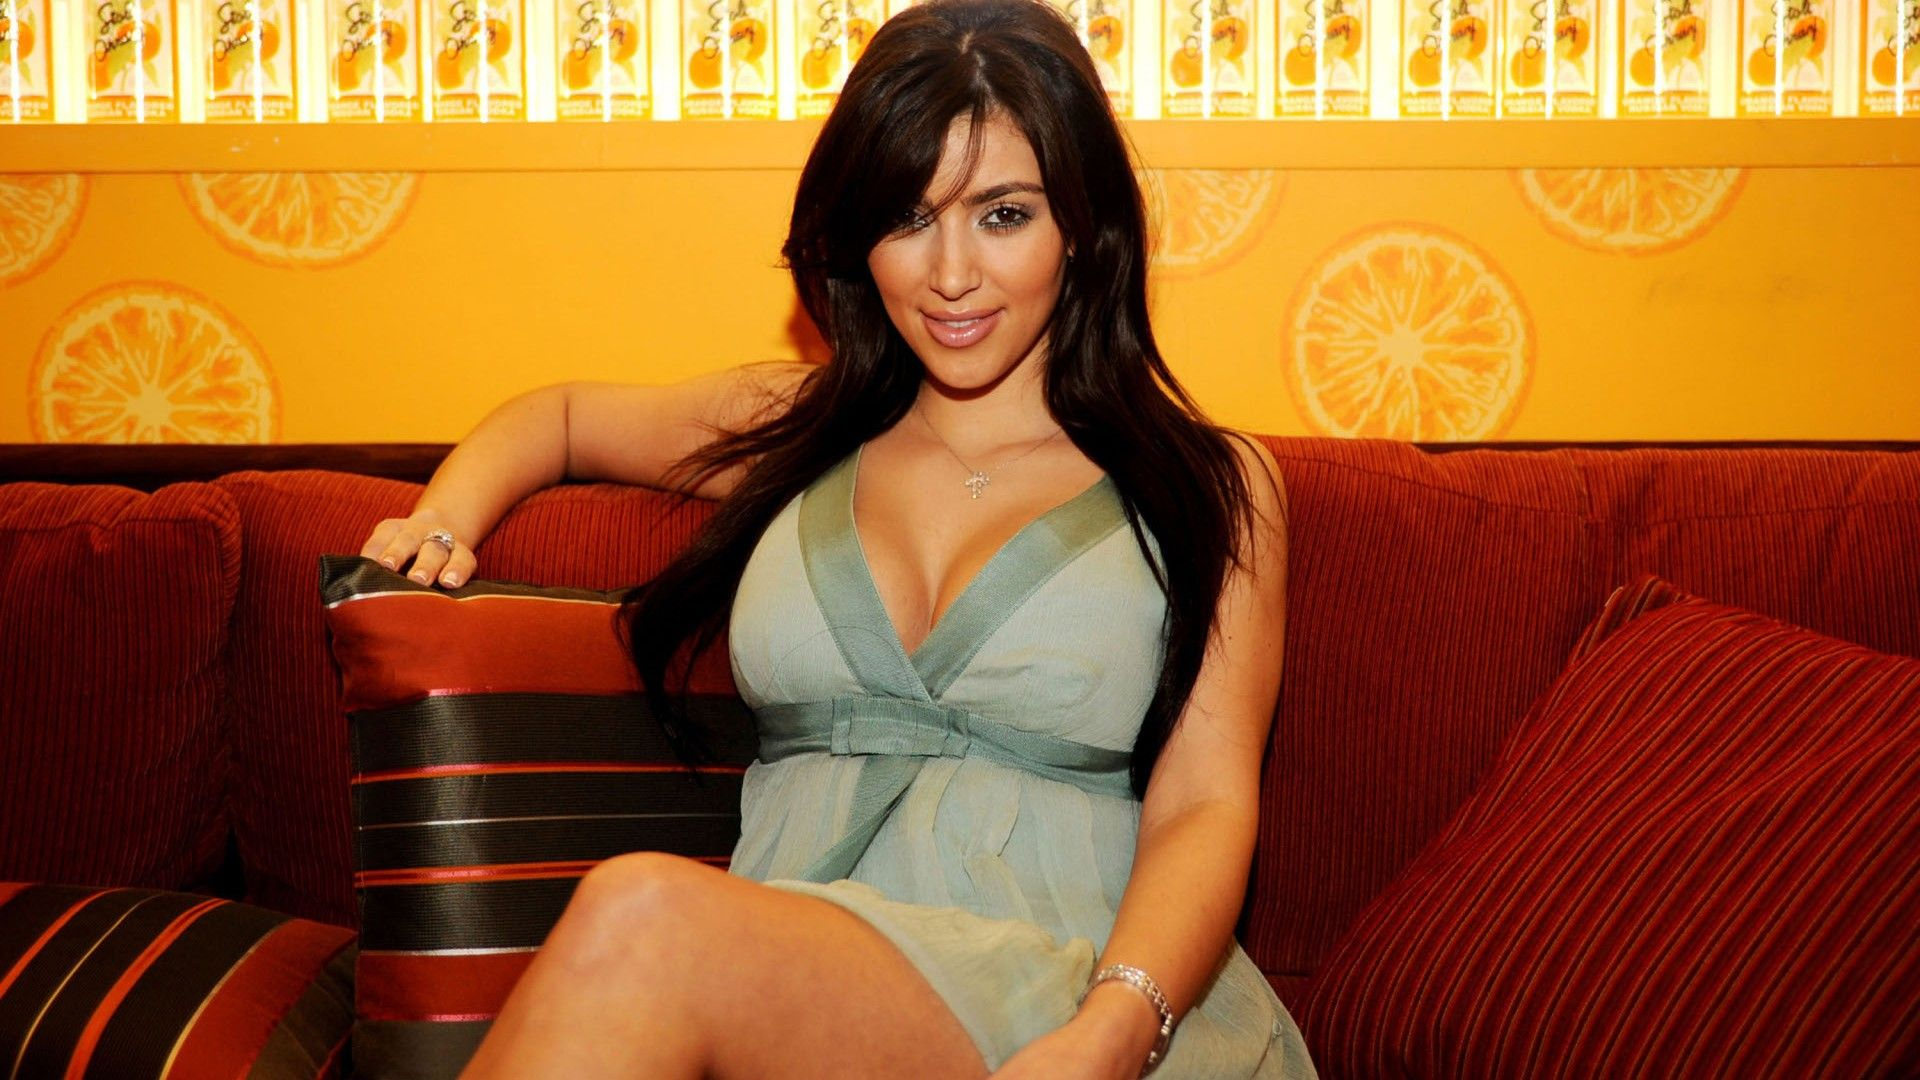 Kim Kardashian 2013 Background HD Wallpaper